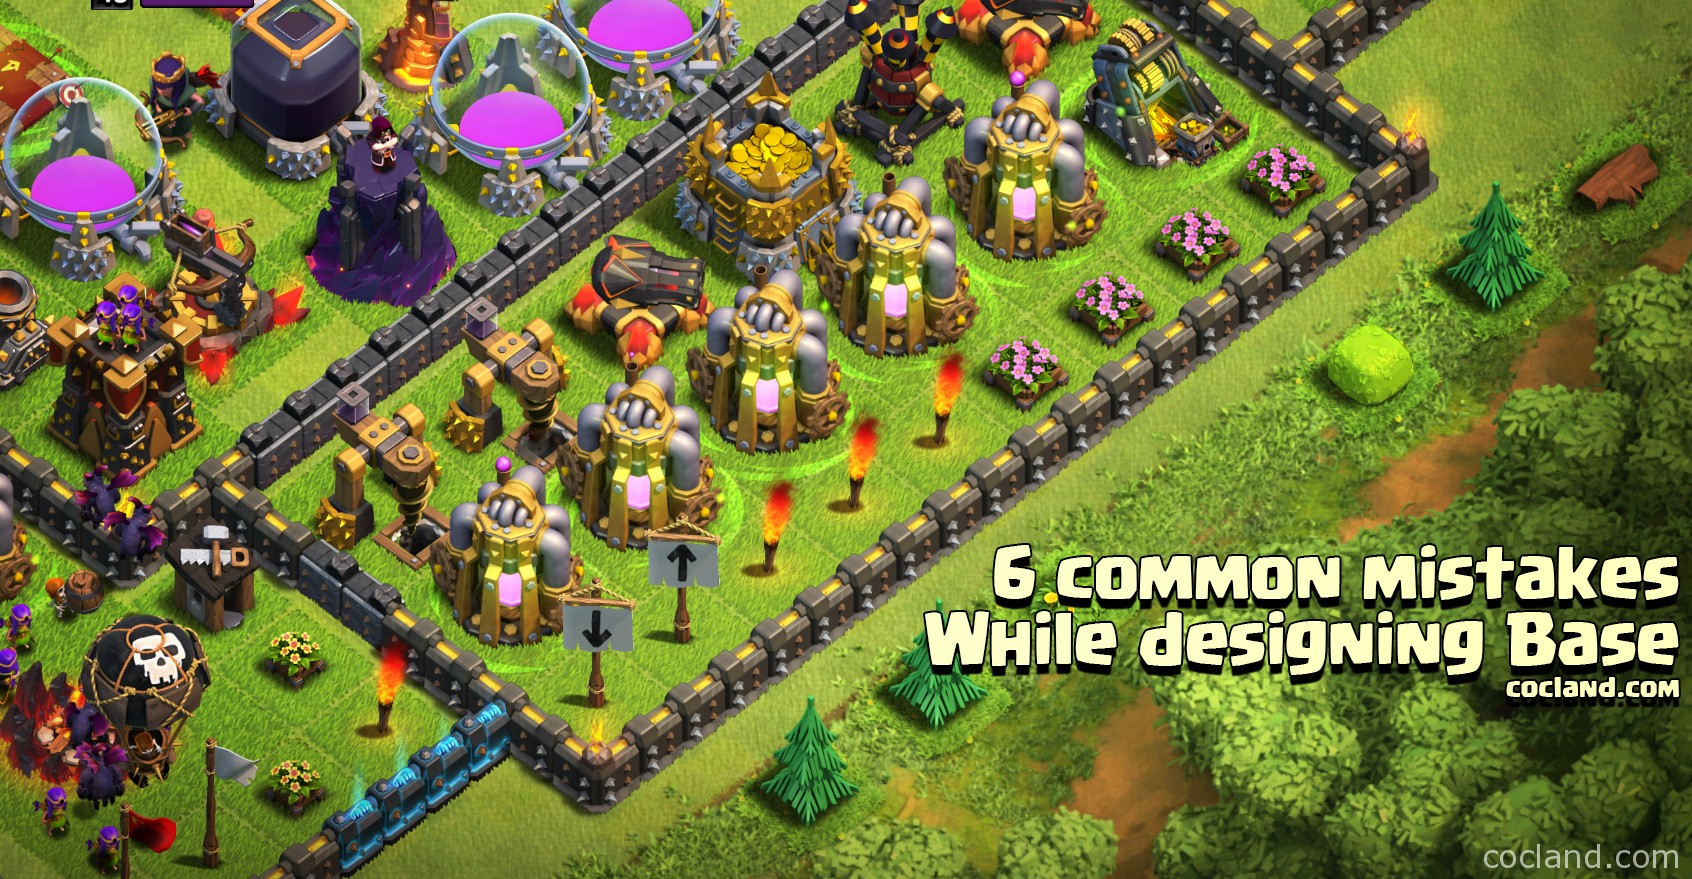 Common Mistakes while designing base in Clash of Clans